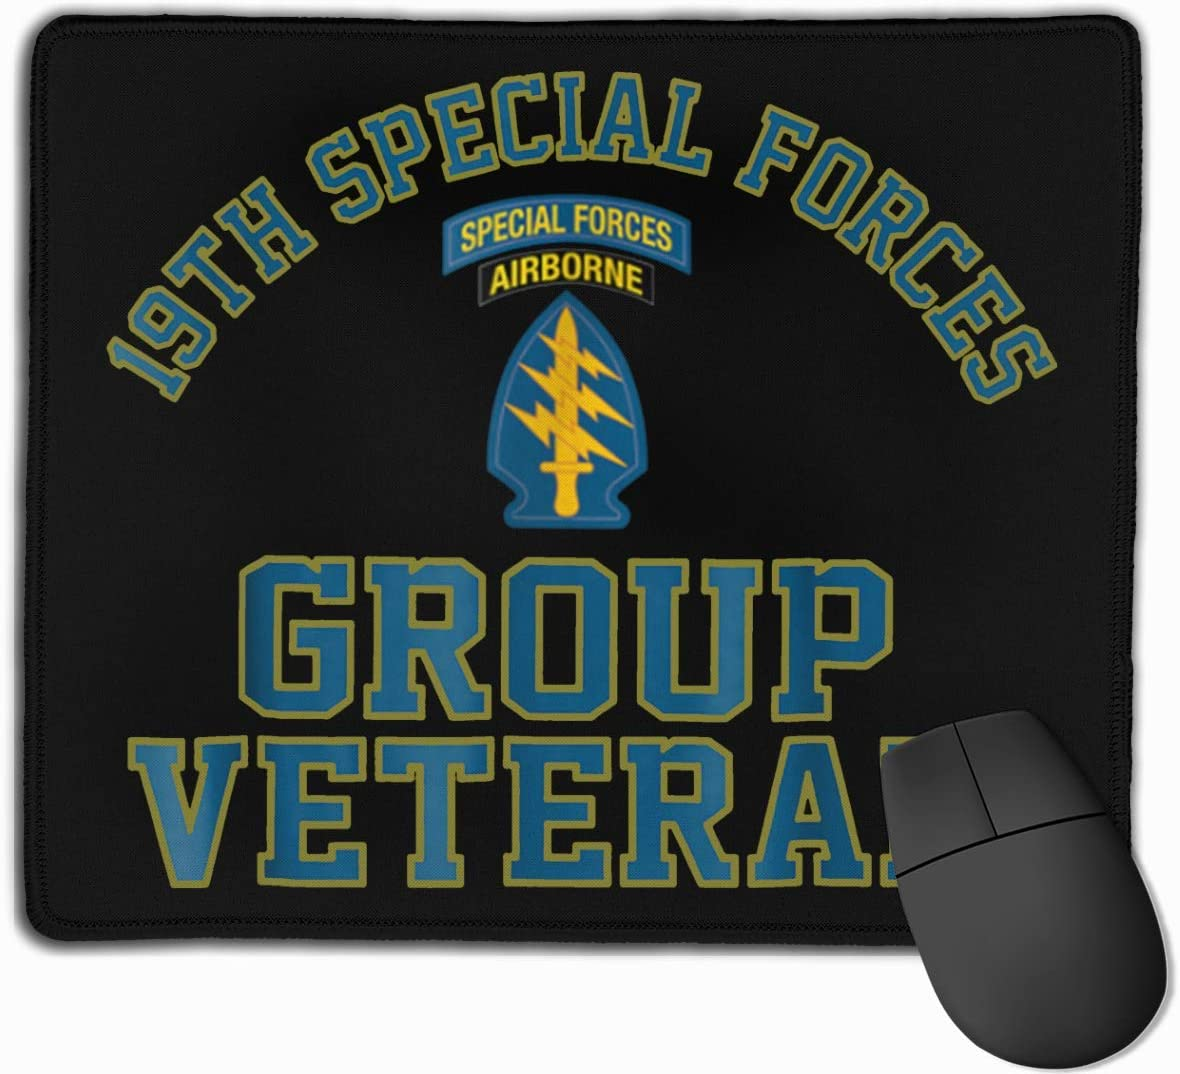 19th Special Forces Group SFG Veteran Mouse Pads Non-Slip Gaming Mouse Pad Mousepad